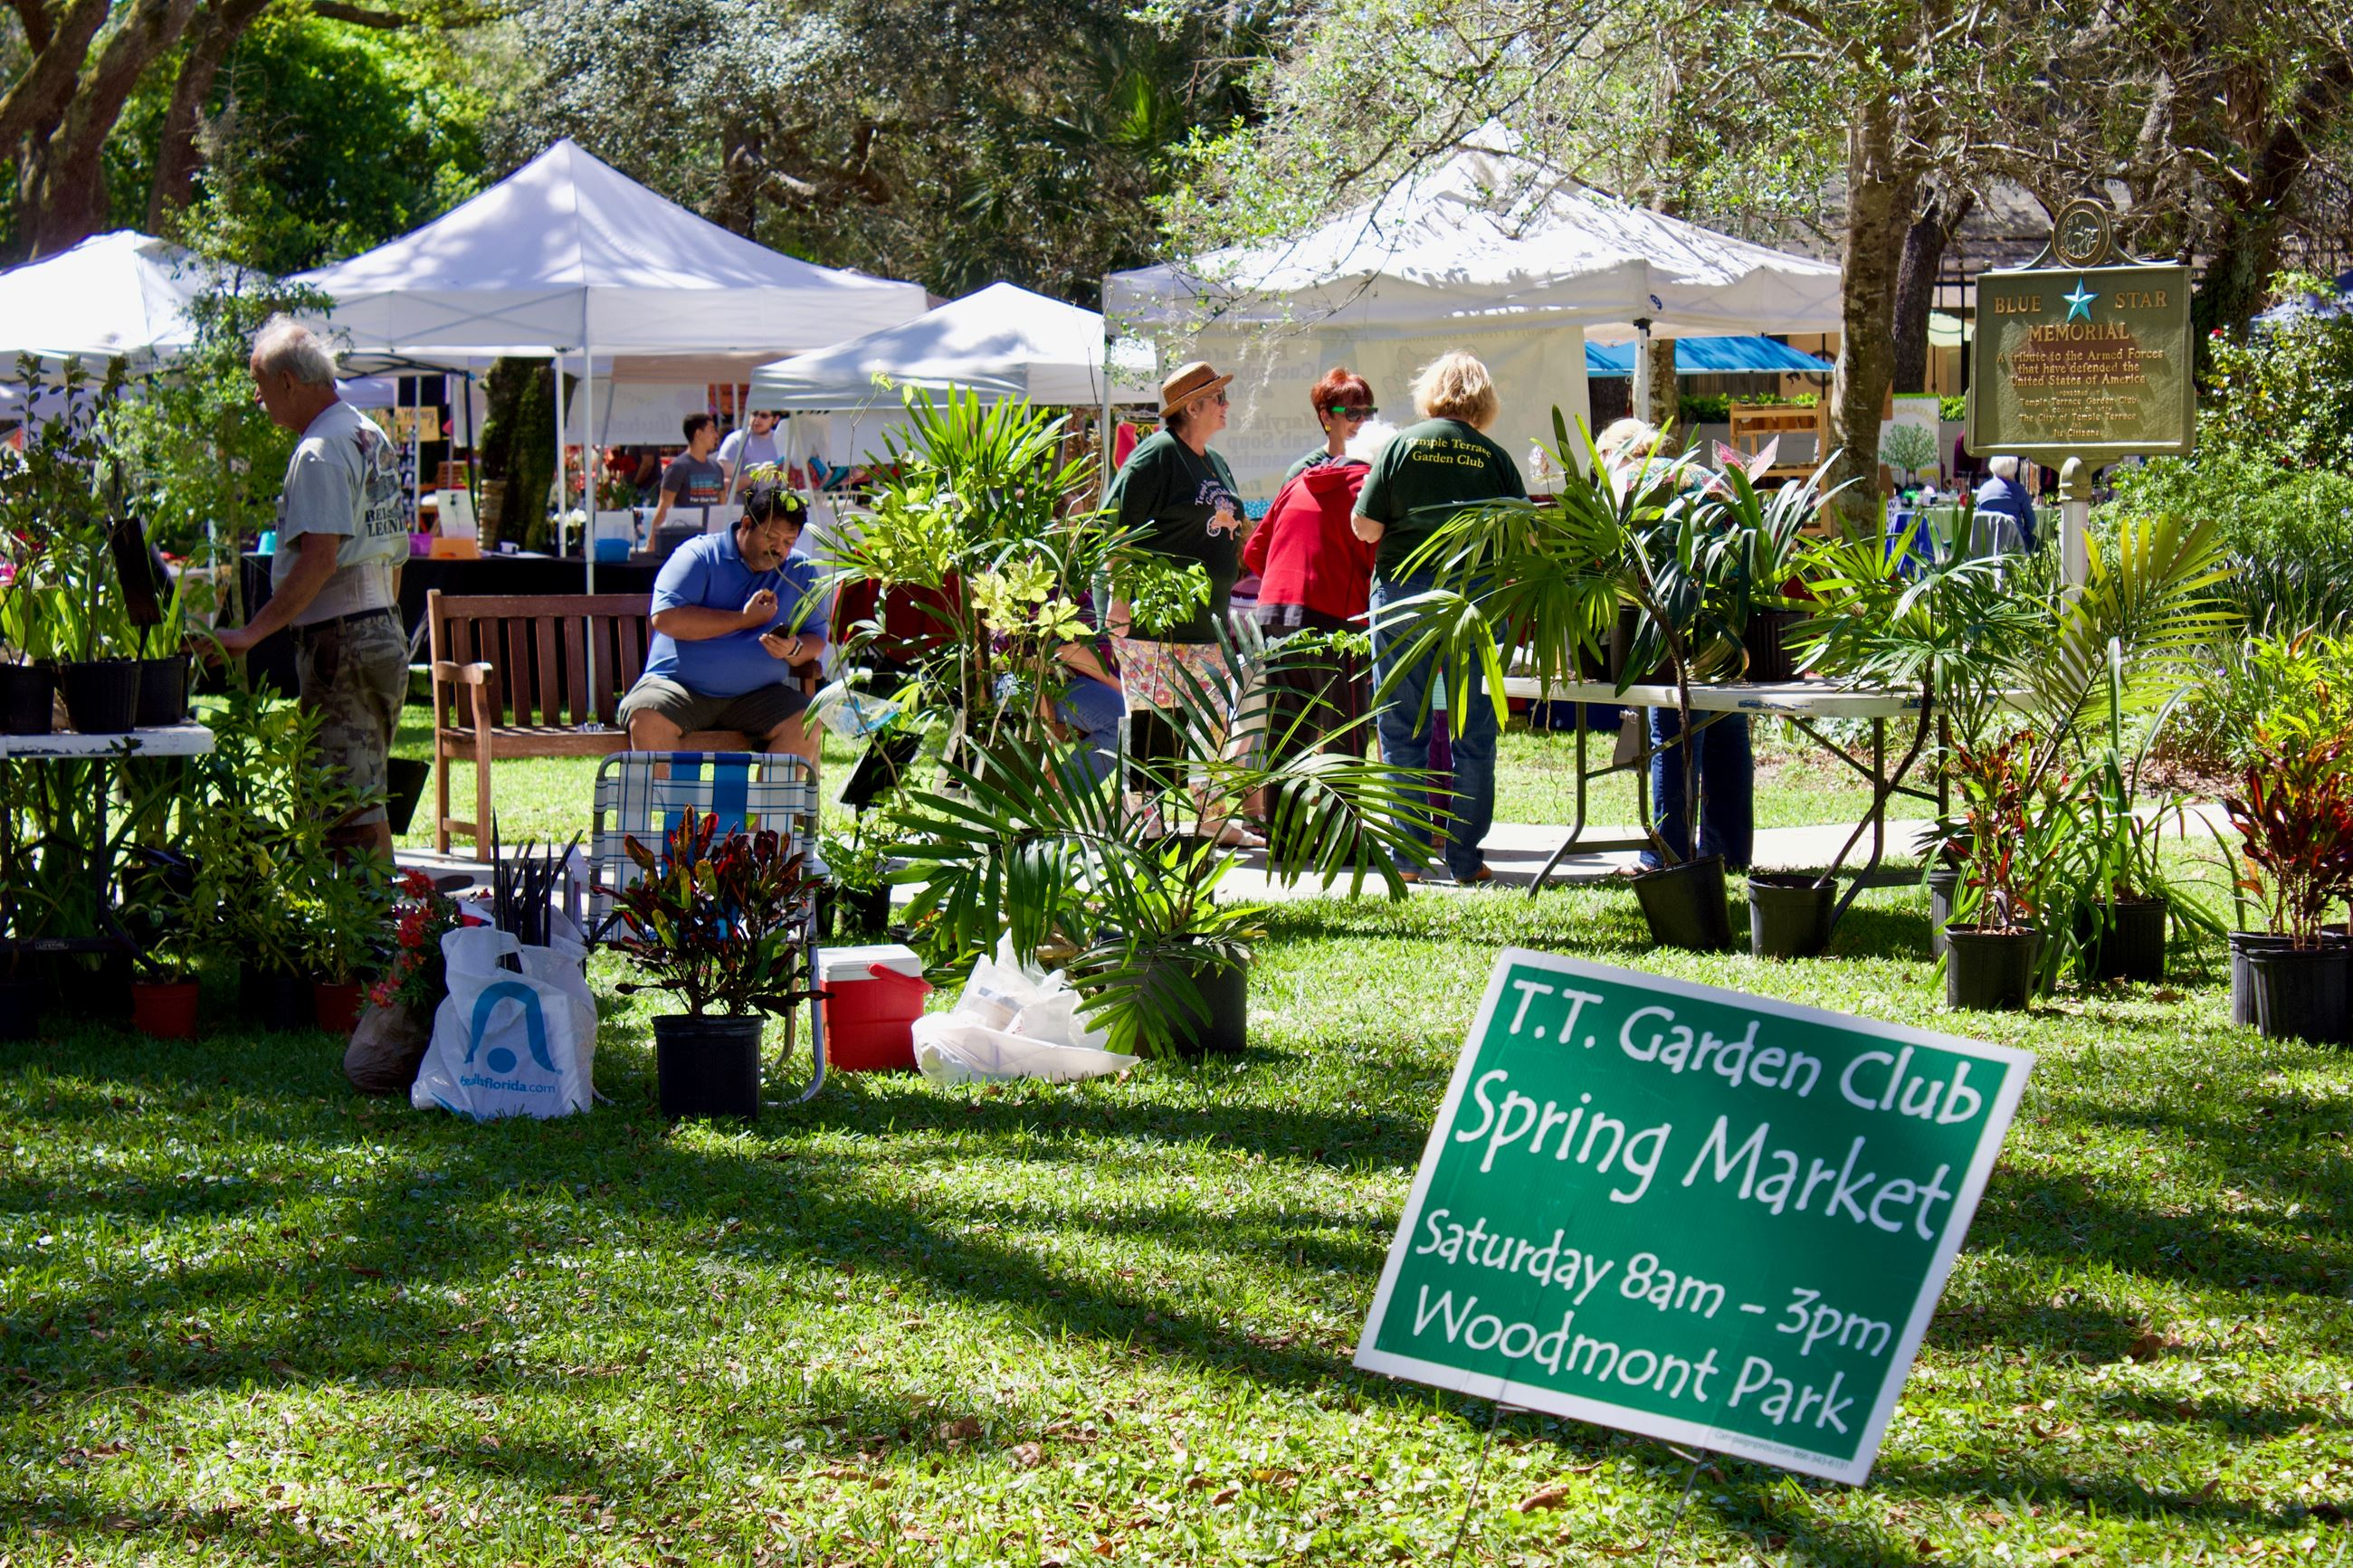 The Spring Market hosted by the TT Garden Club in Woodmont Park